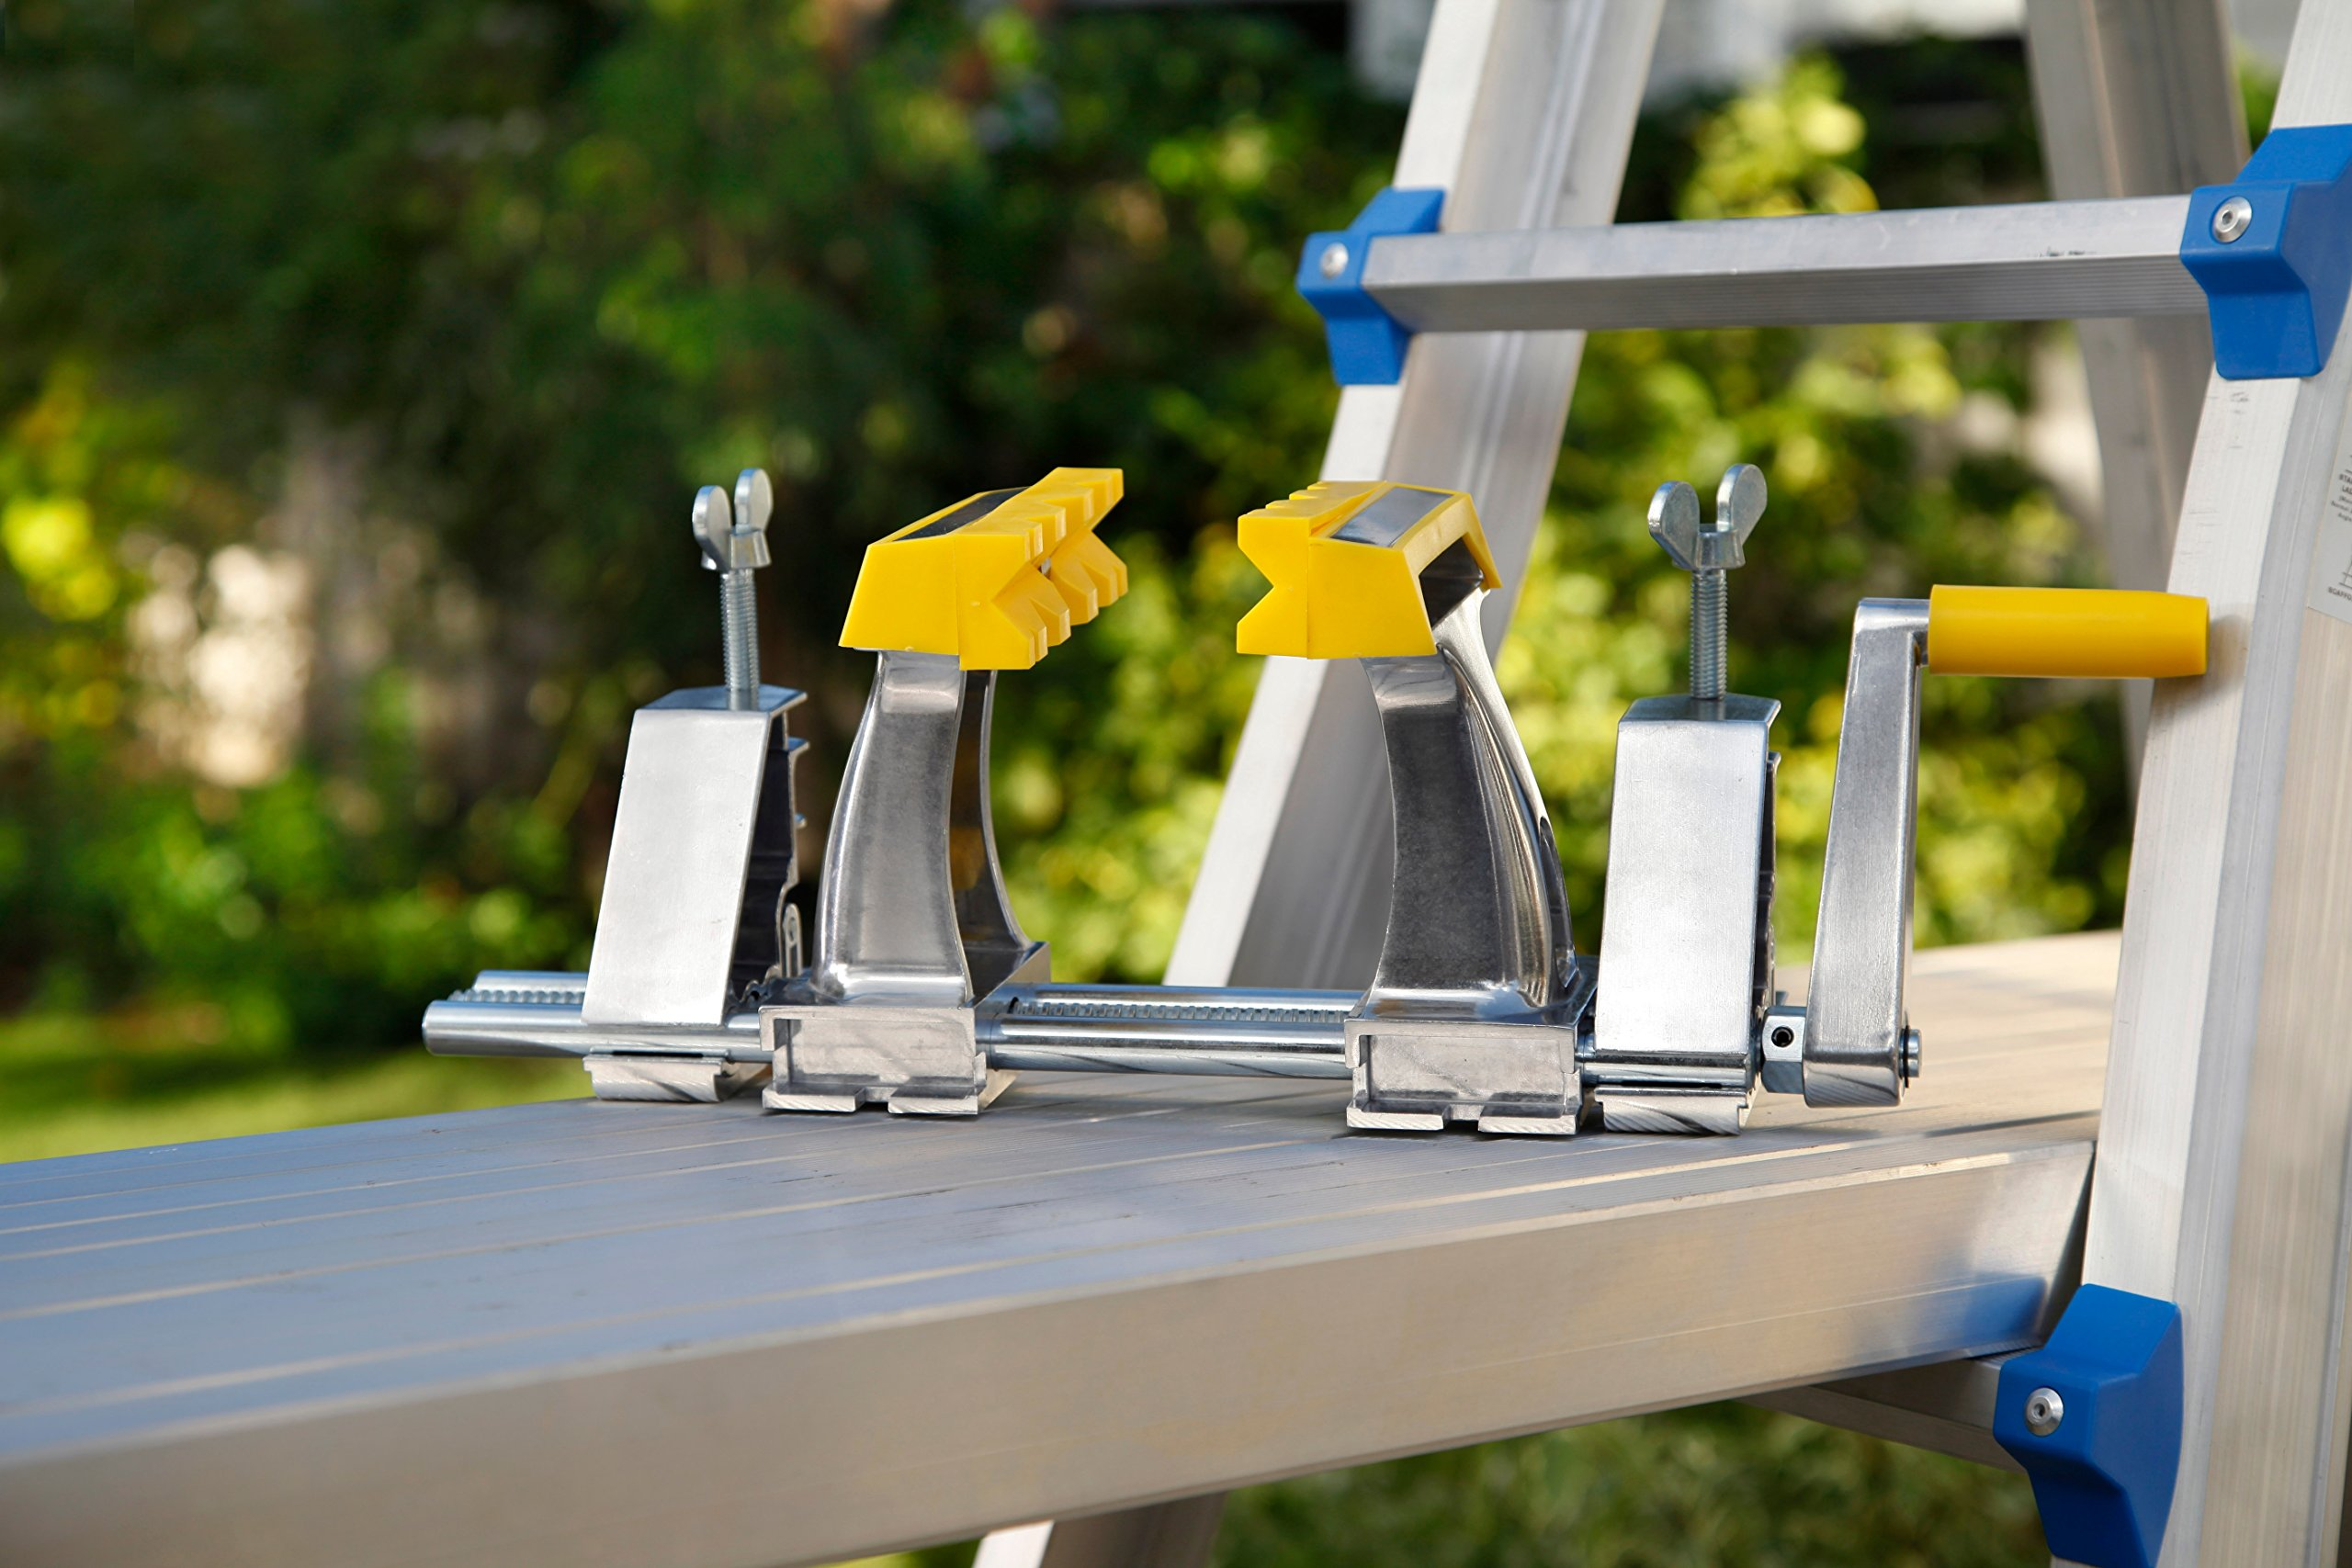 Extra Pair of Hands by Renovator - The World's Most Versatile, Portable, Patented Clamping System That Holds Your Work, So You Can Do Your Work by Renovator (Image #6)